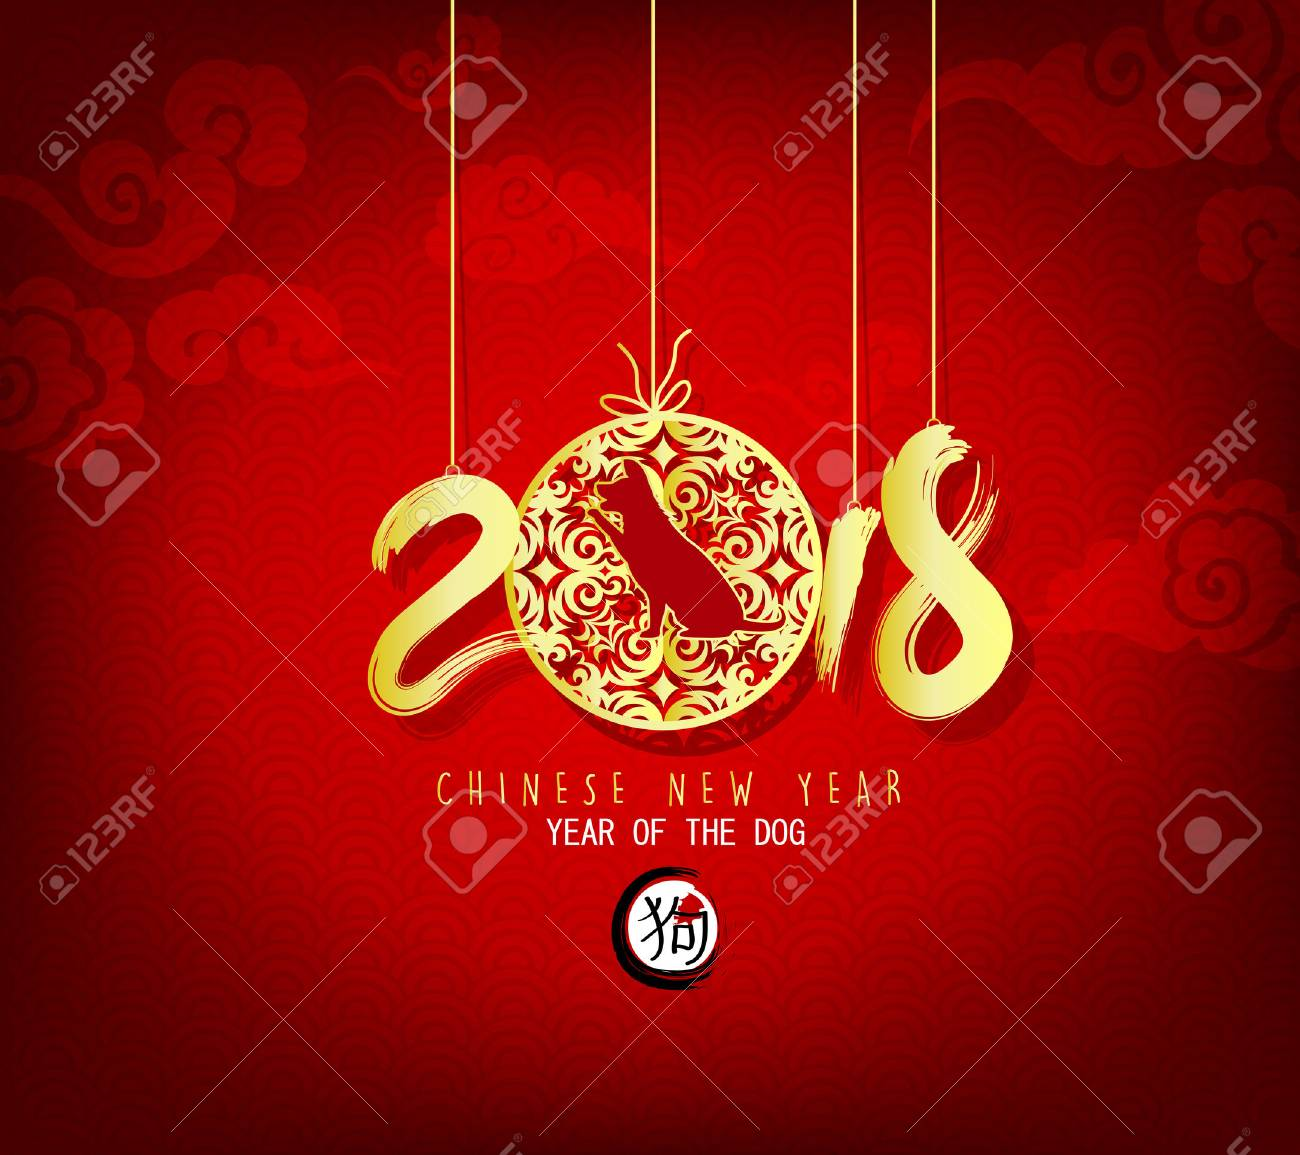 Chinese New Year 2018 Latest News Images And Photos Crypticimages